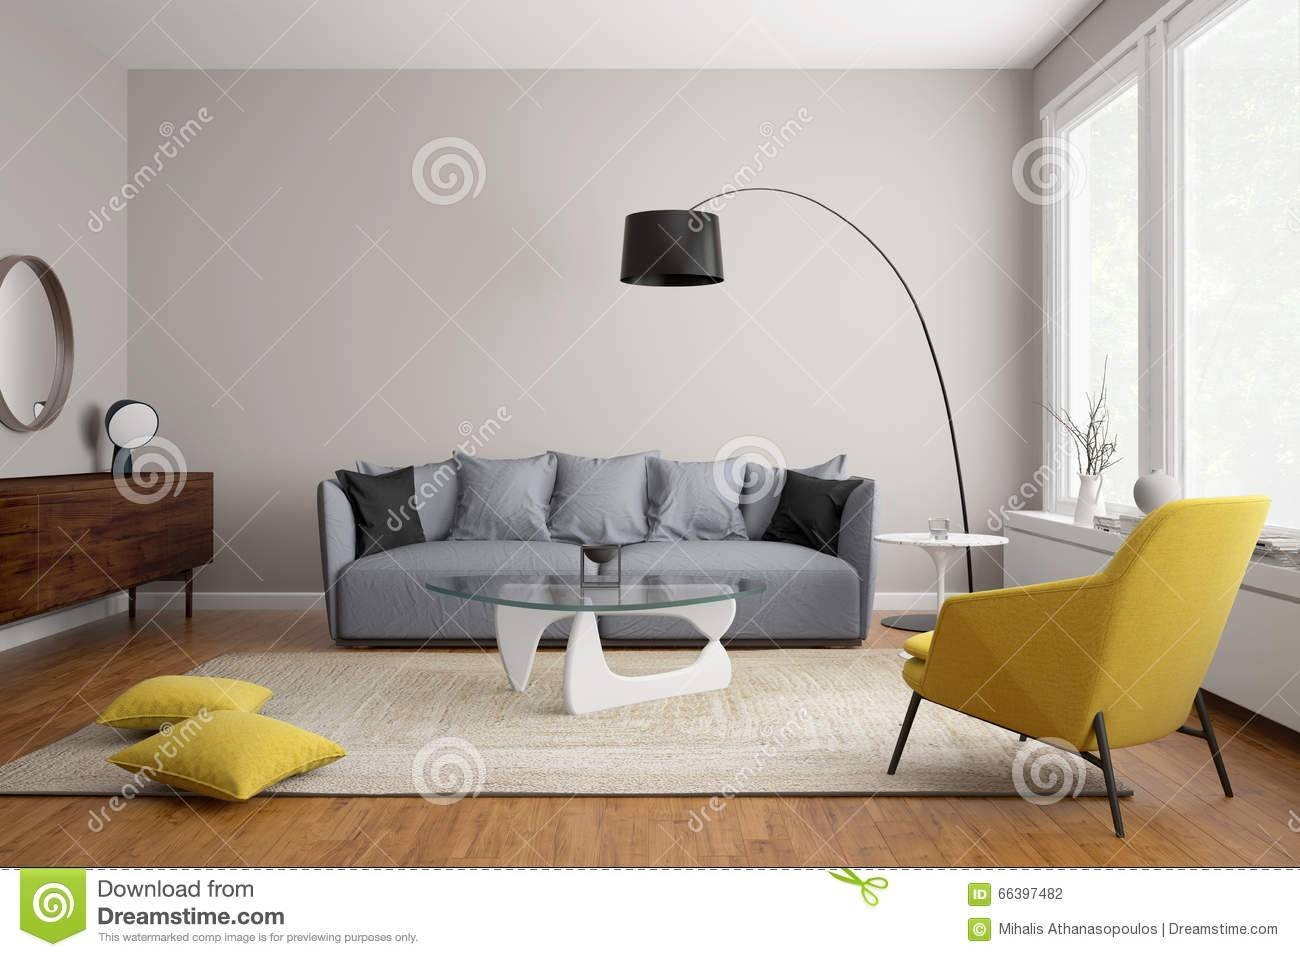 Modern Scandinavian Living Room With Grey Sofa Stock Illustration intended for Living Room With Grey Sofas (Image 15 of 15)